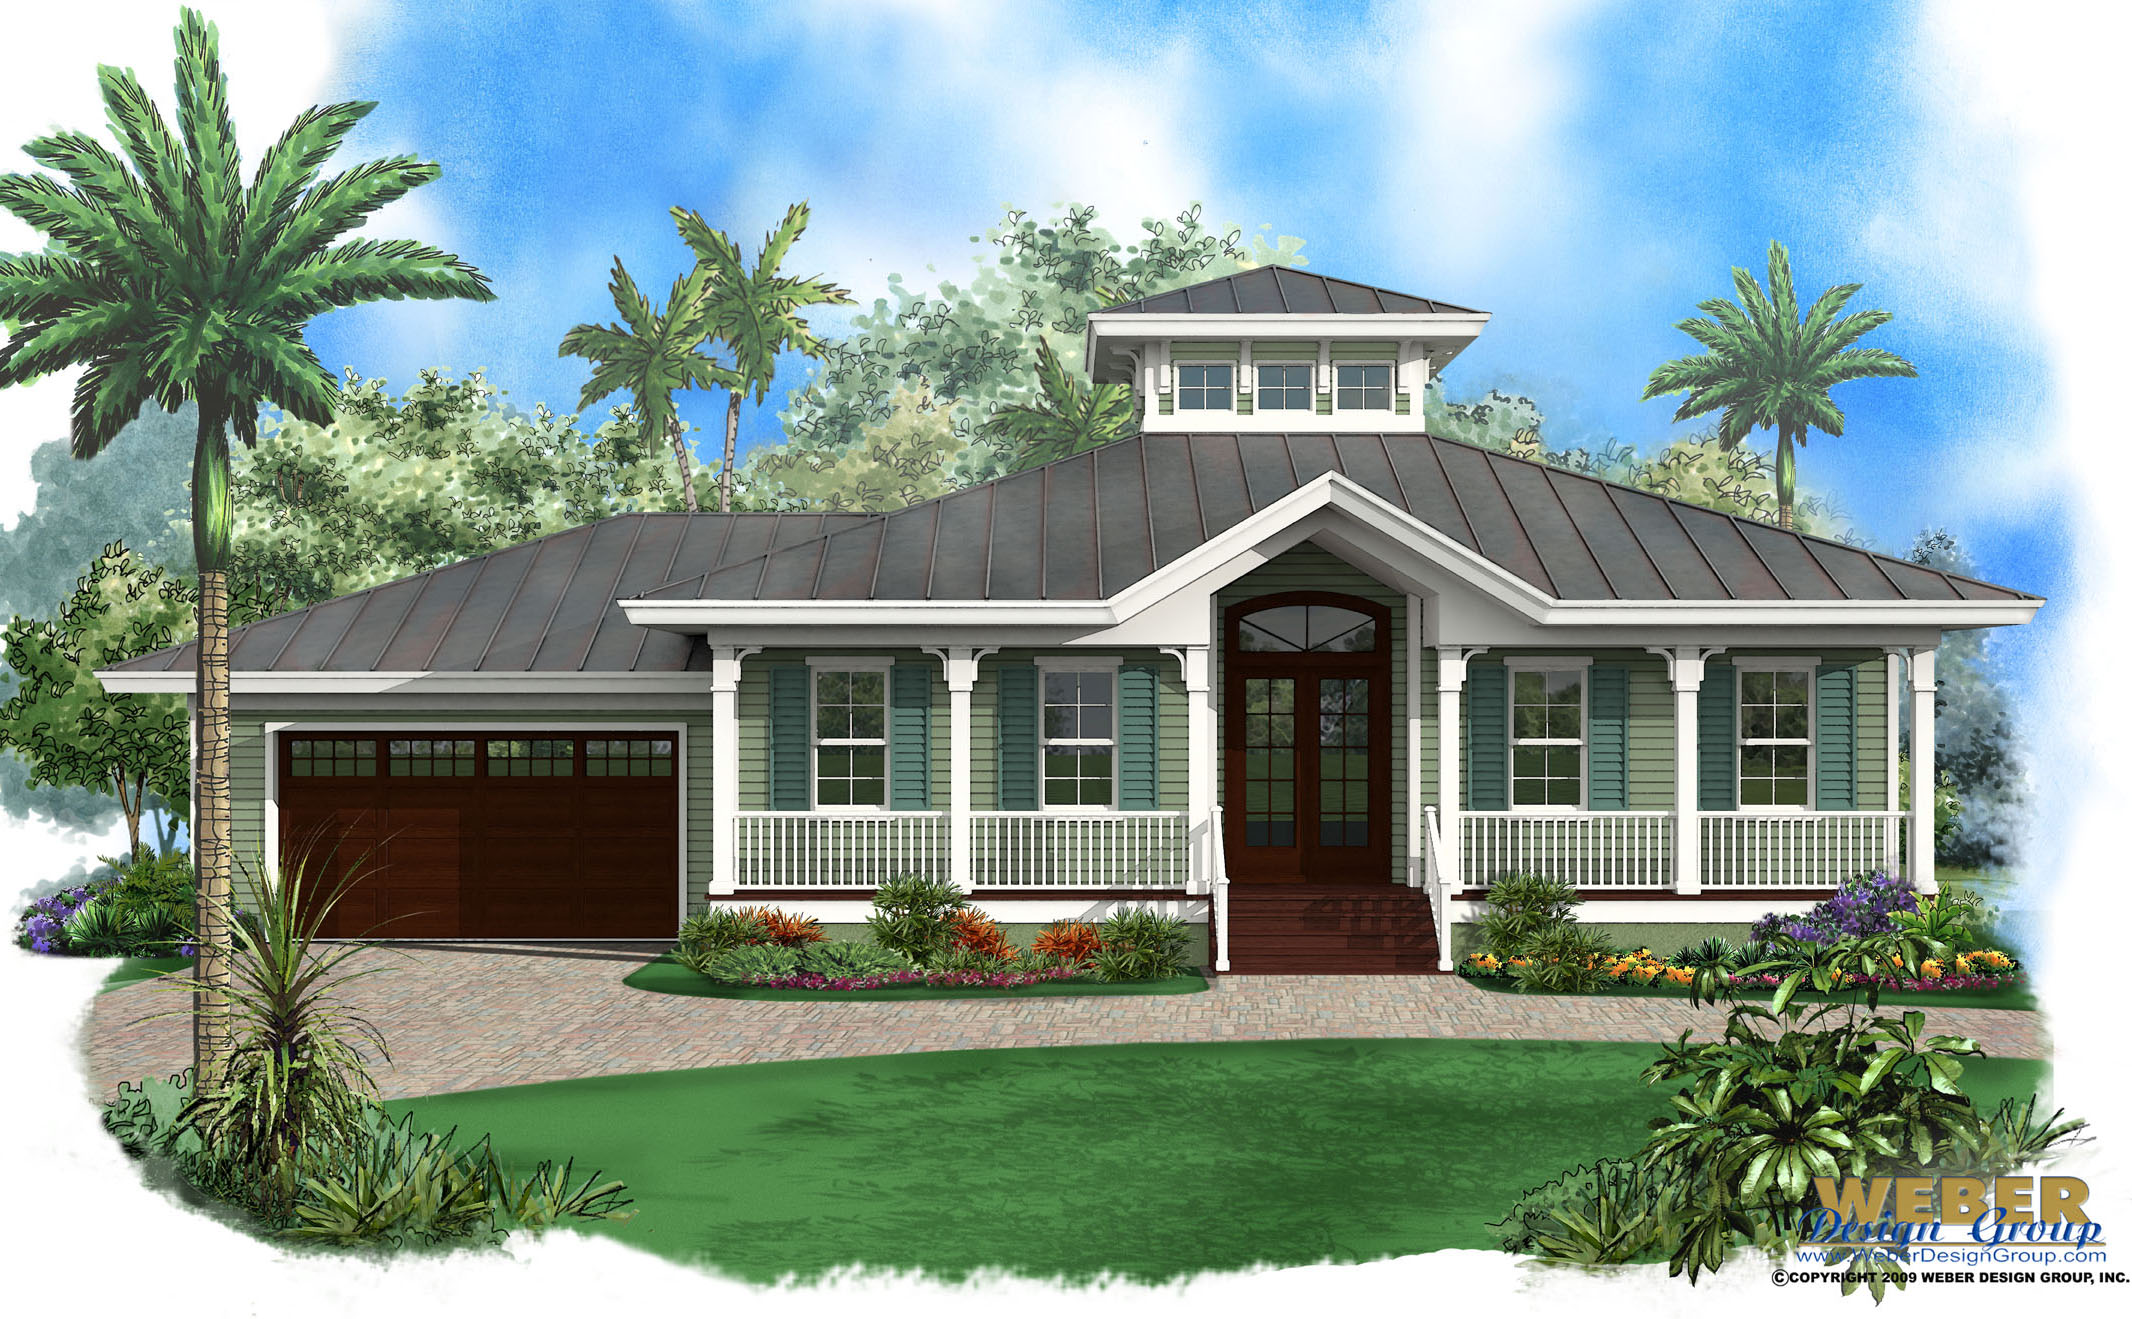 Key west house plans key west island style home floor plans for Seaside house plans designs